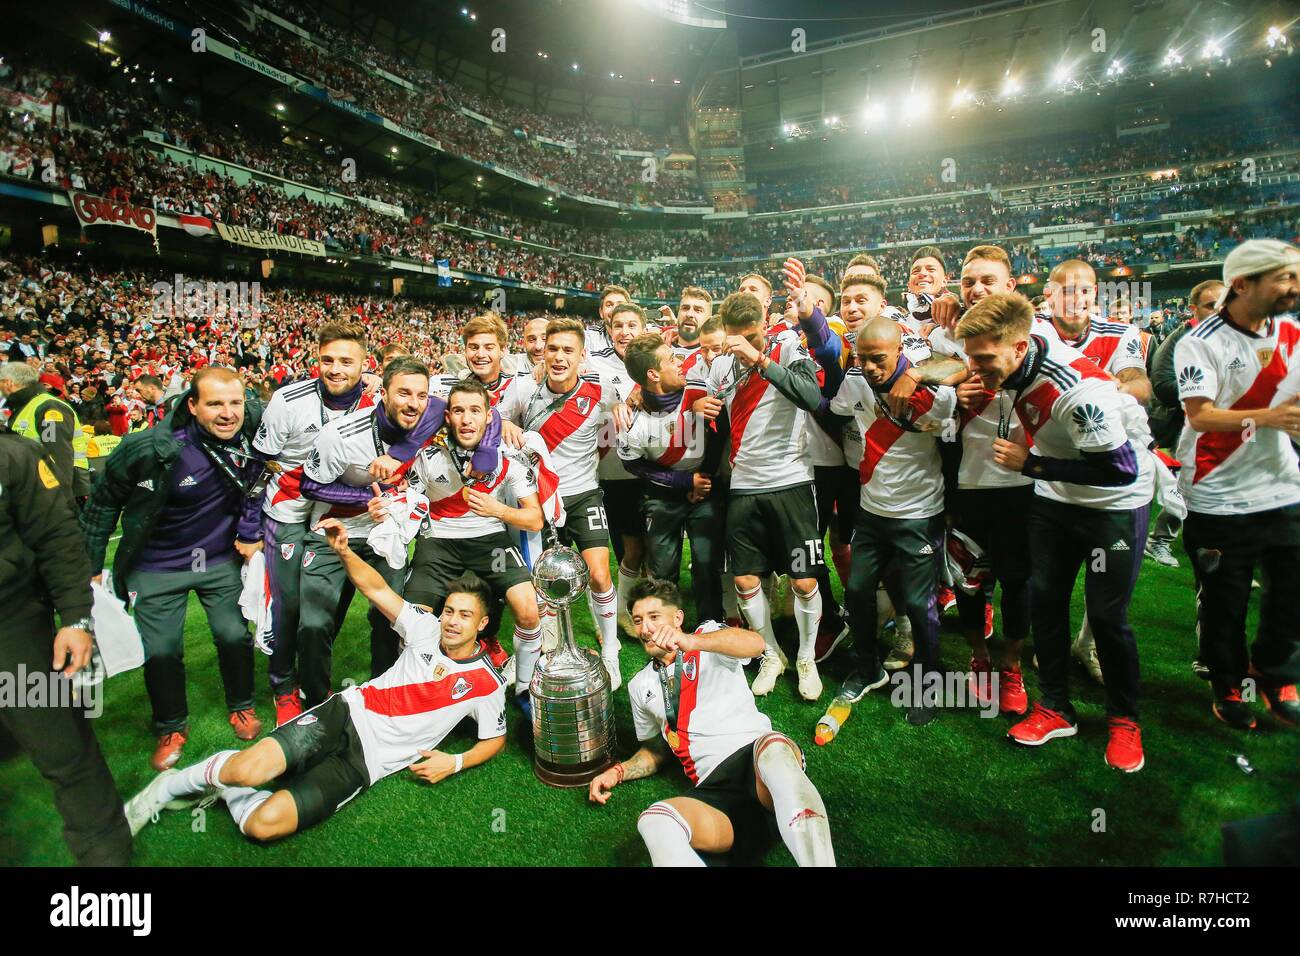 Players Of River Plate Celebrates After They Won The Finals Of Copa